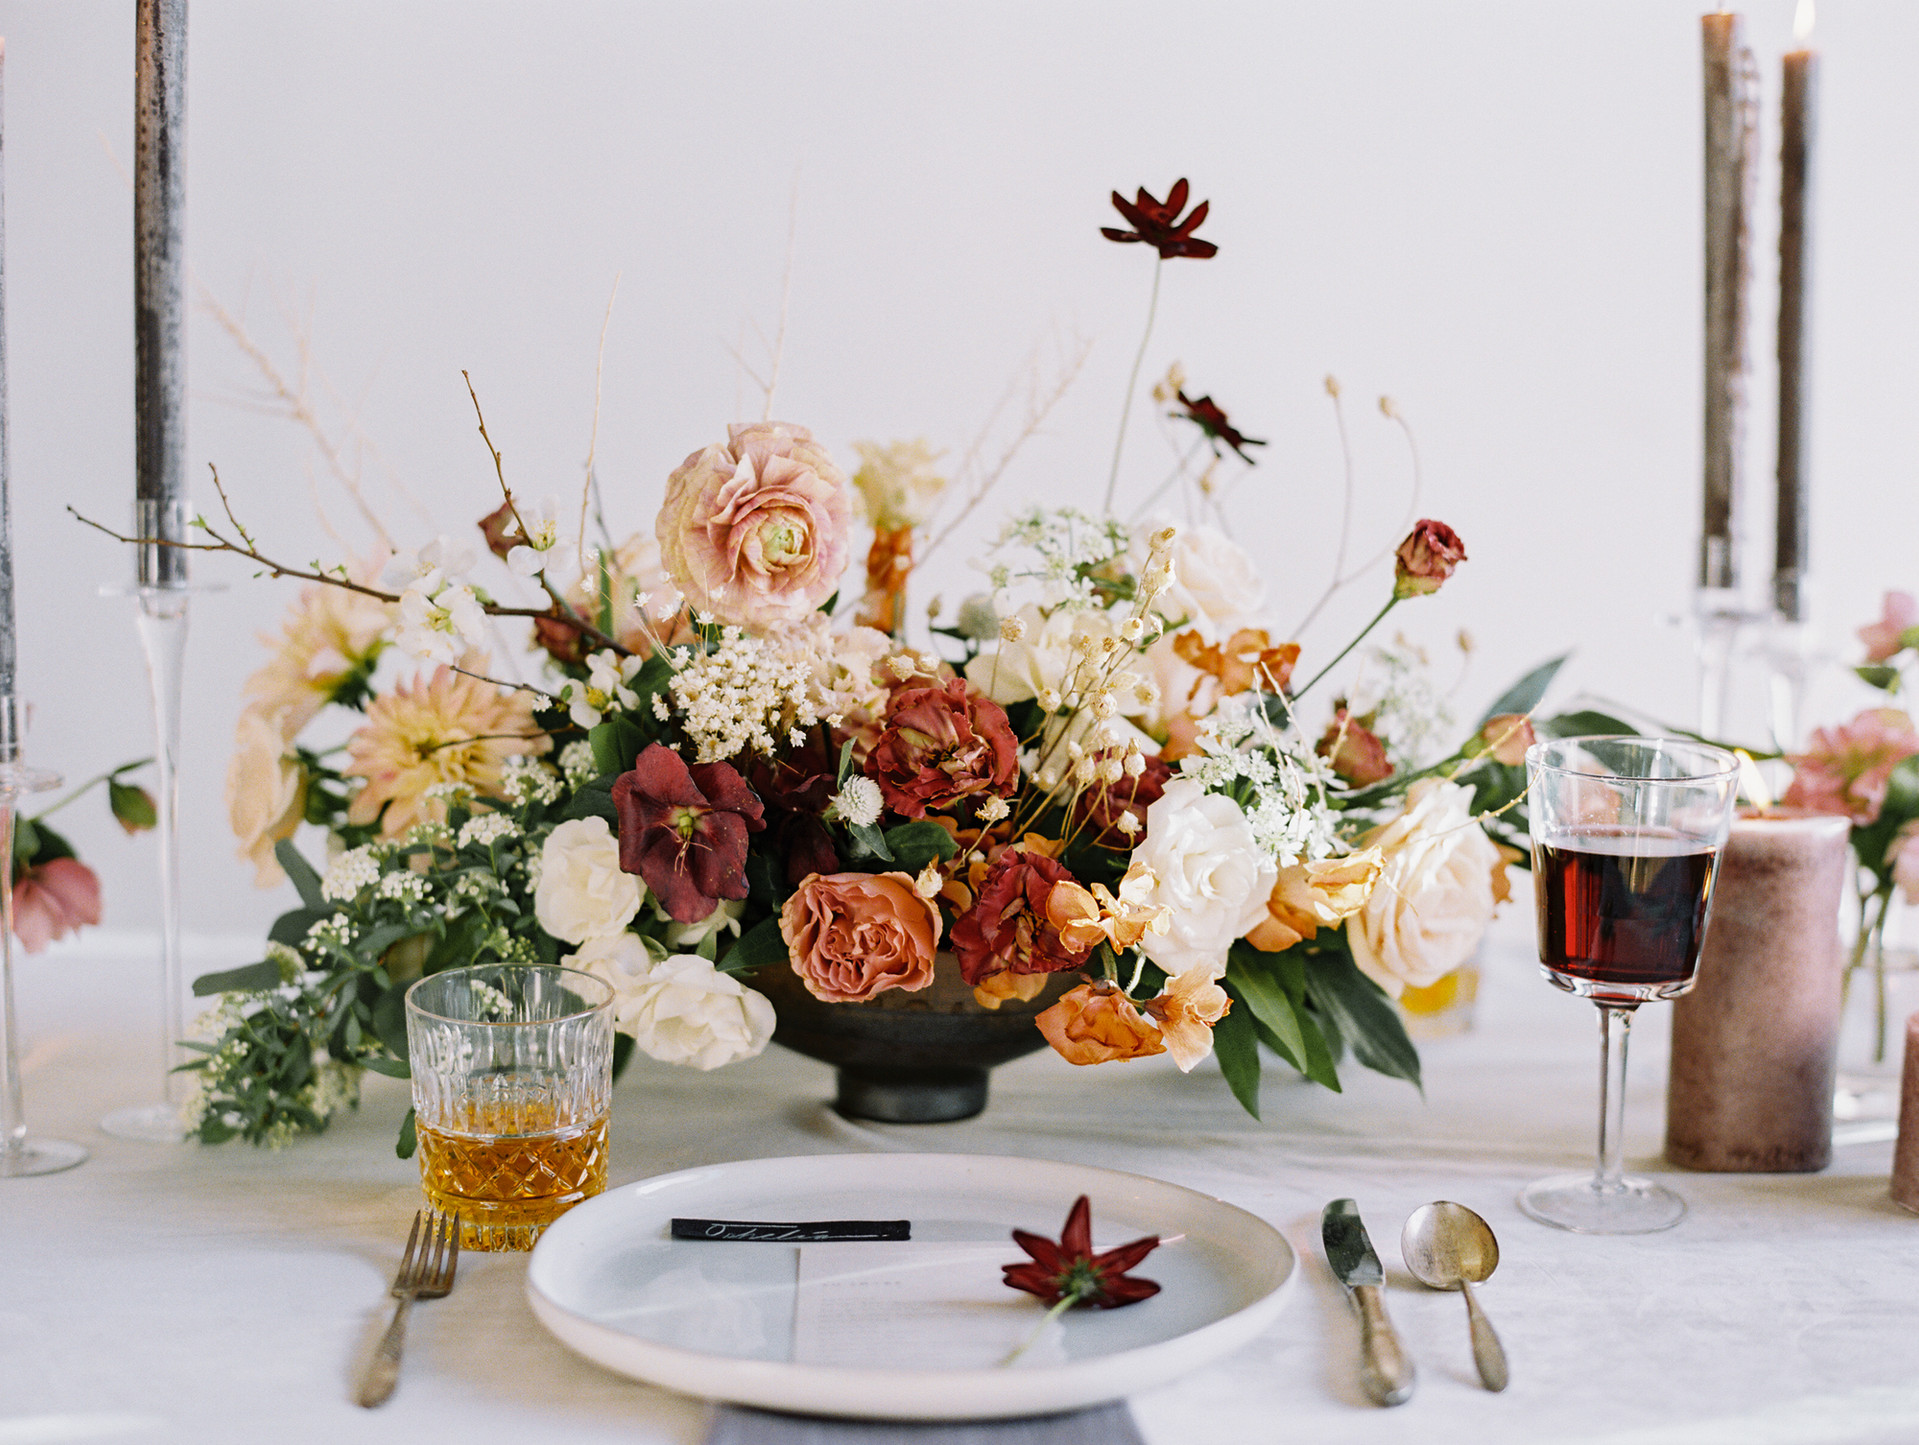 Chocolate cosmos, lisianthus, ranunculucs and dahlias in shades of nude, copper, and burnt sienna. Photo: Gaby Jeter